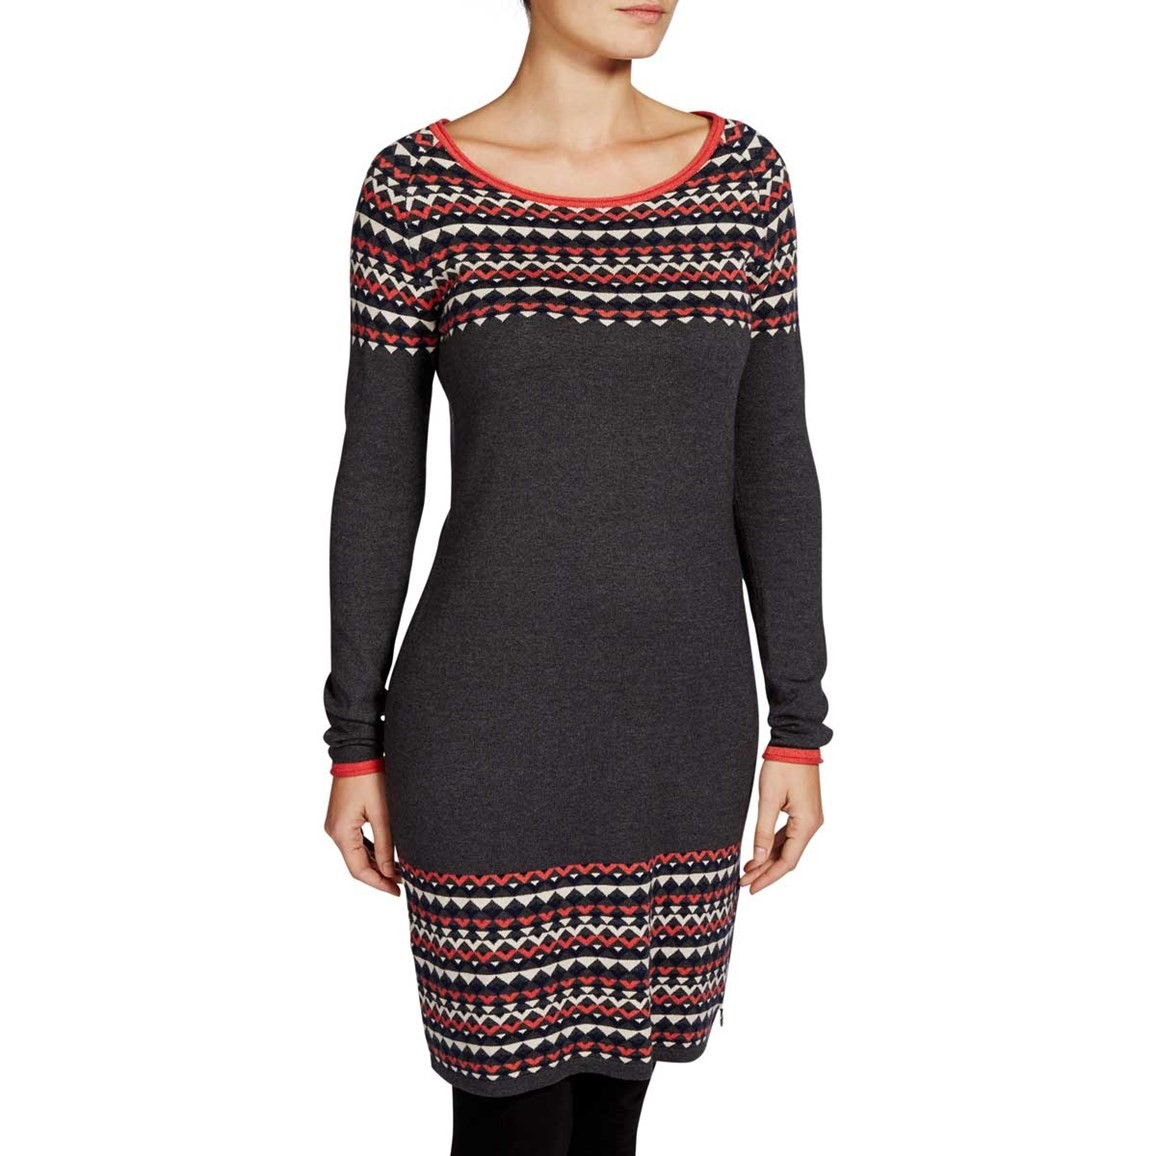 Nordic Patterned Knitted Dress Charcoal Grey